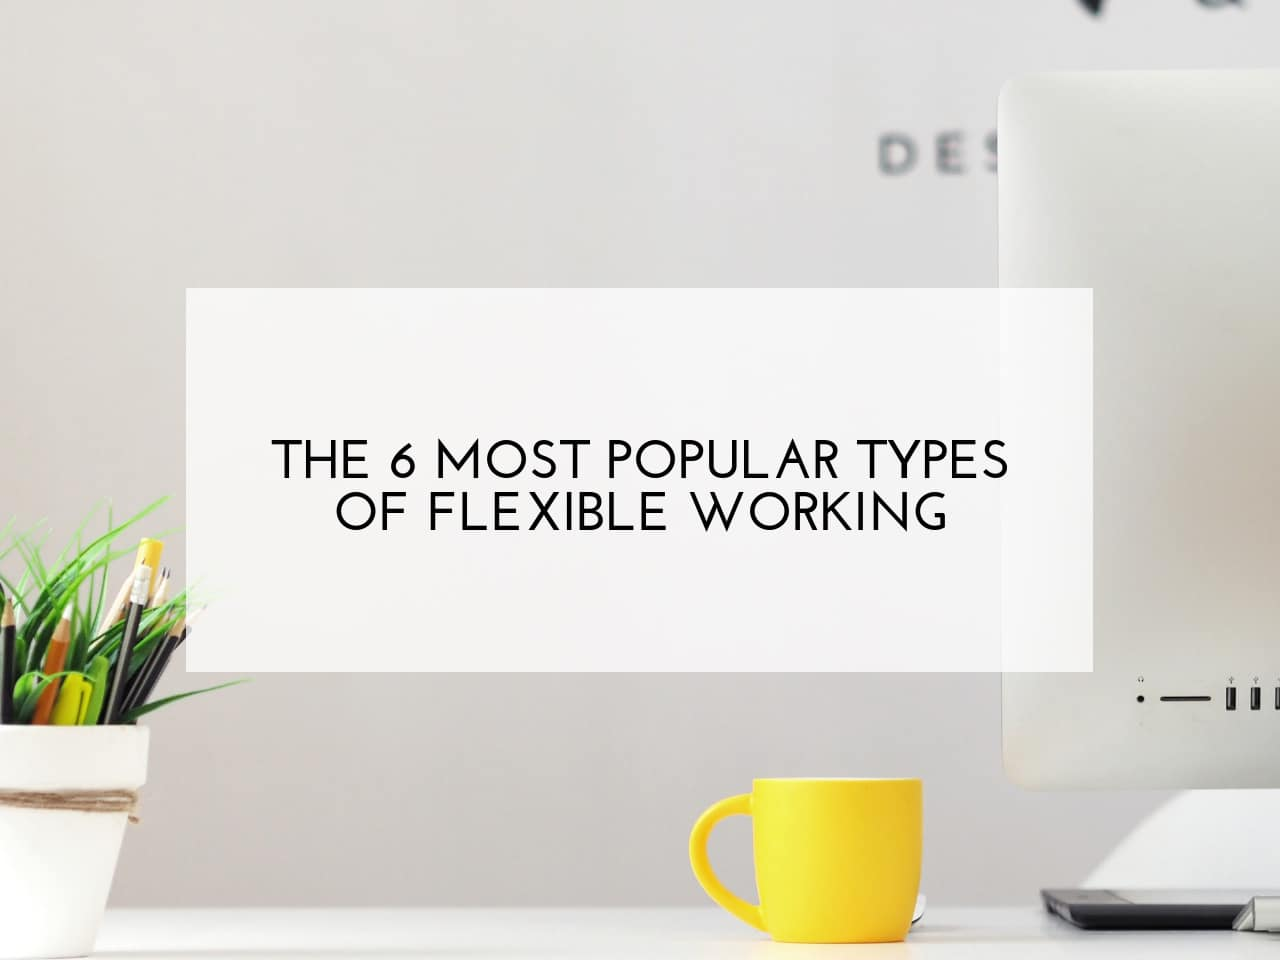 The 6 Most Popular Types of Flexible Working